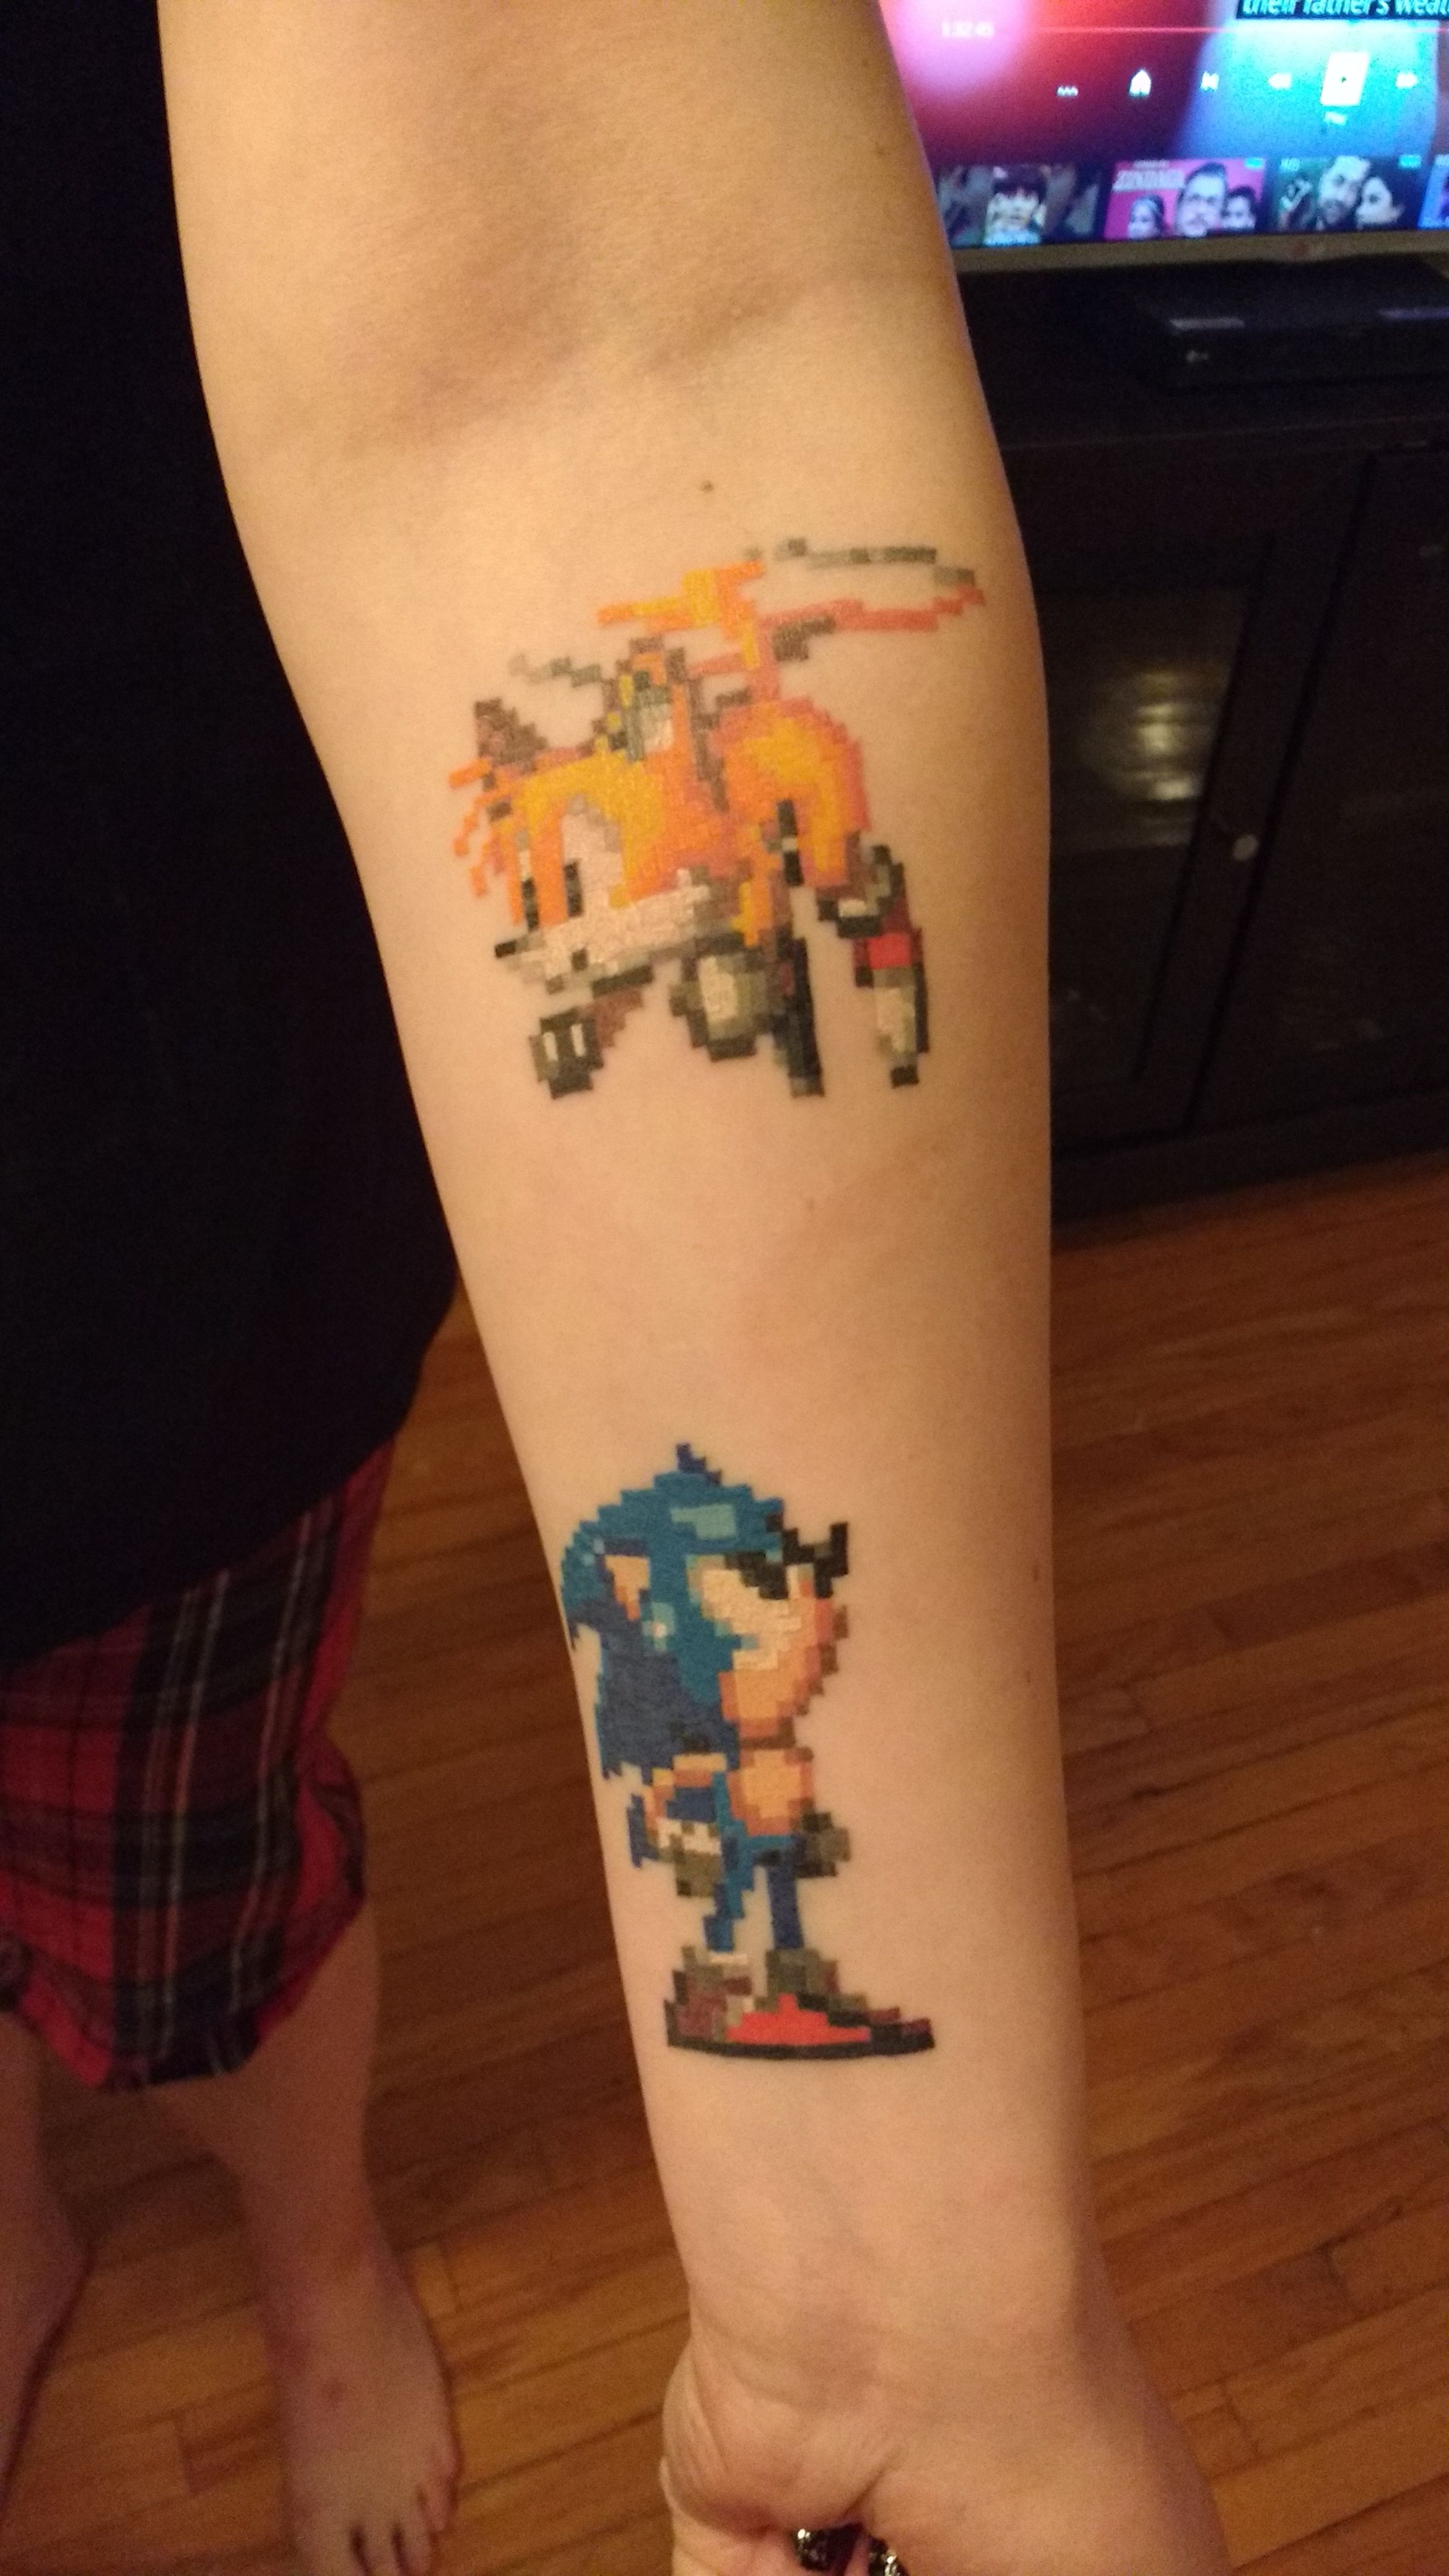 16bit Sonic tattoos Nerdy tattoos, Gaming tattoo, Gamer